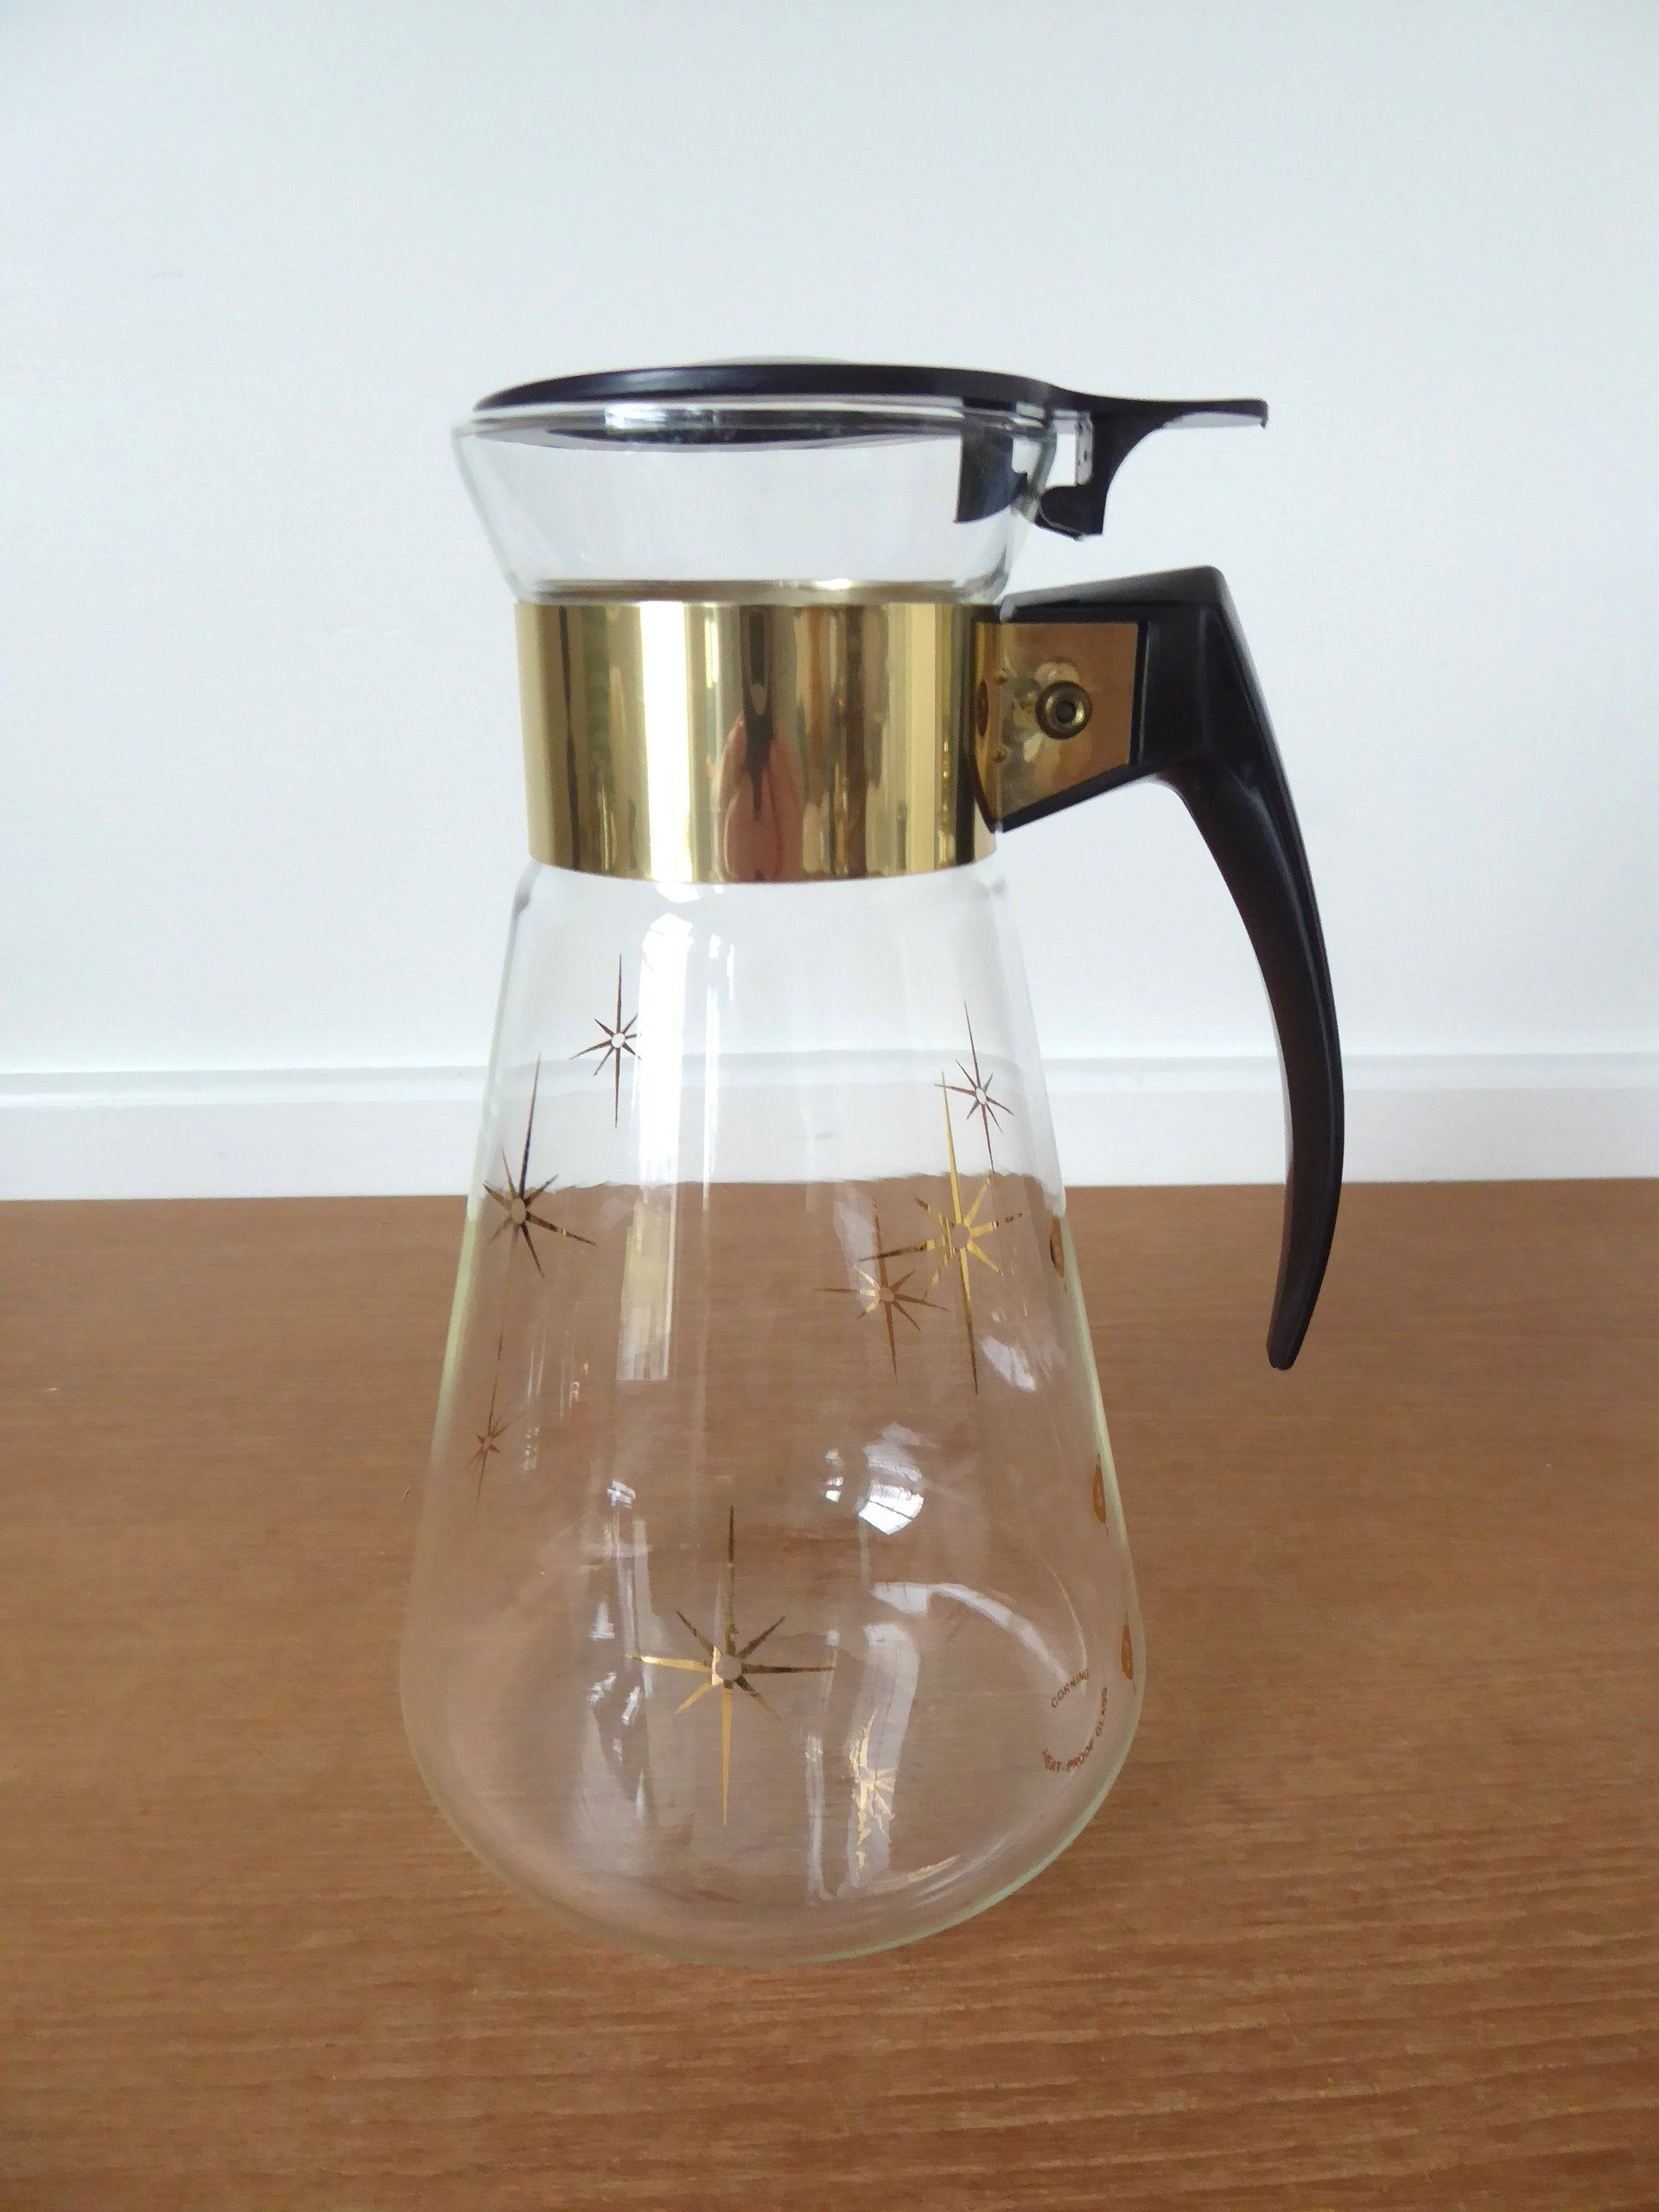 Atomic age Corning heatproof glass coffee carafe in